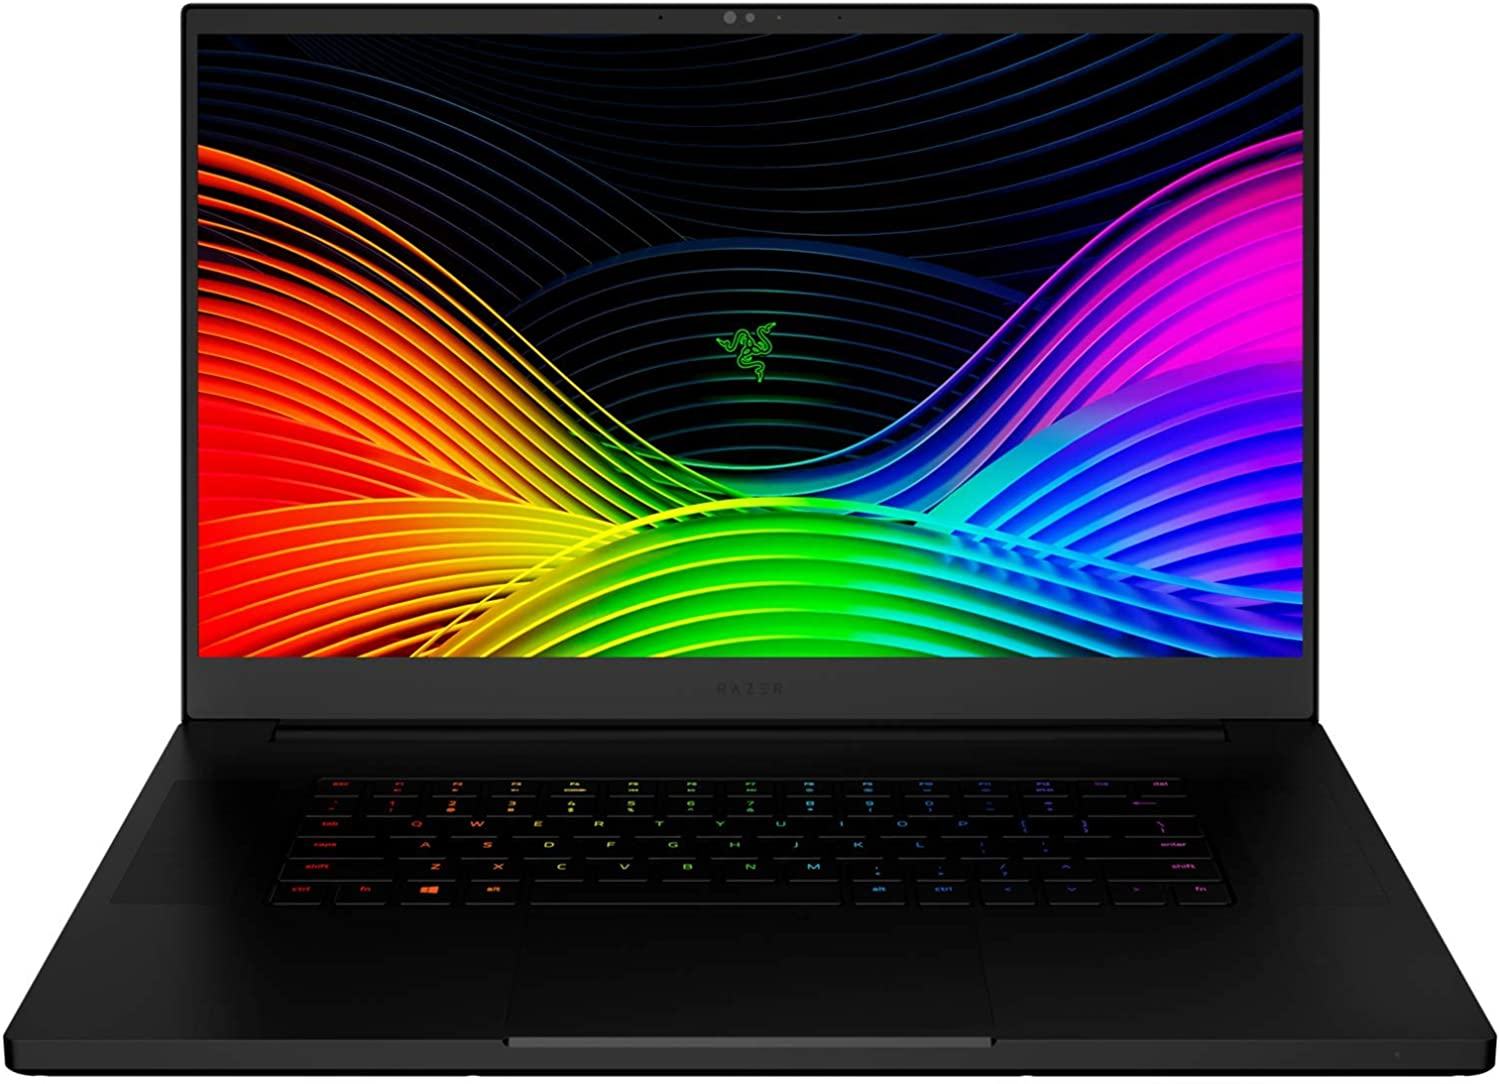 Razer Blade Pro 17 Gaming Laptop 2019: Intel Core i7-9750H, NVIDIA GeForce RTX 2080 Max-Q, 17.3